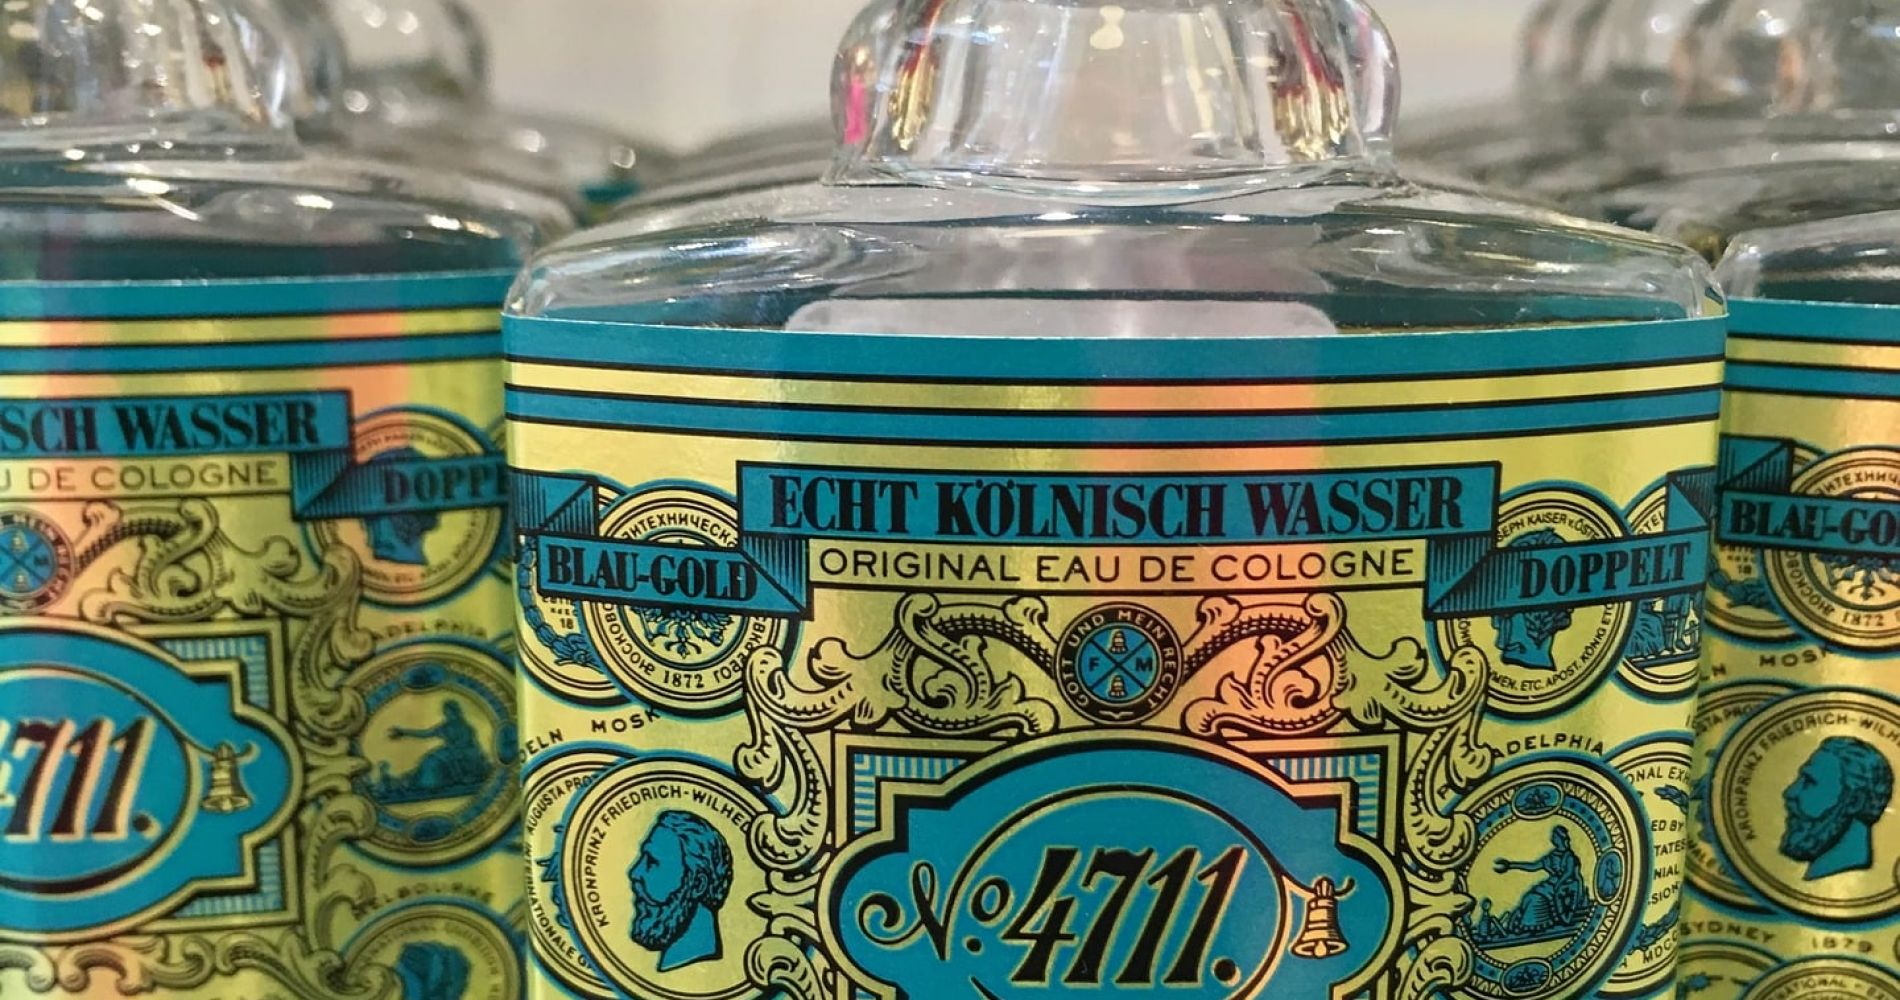 Smell Eau de Cologne in Germany